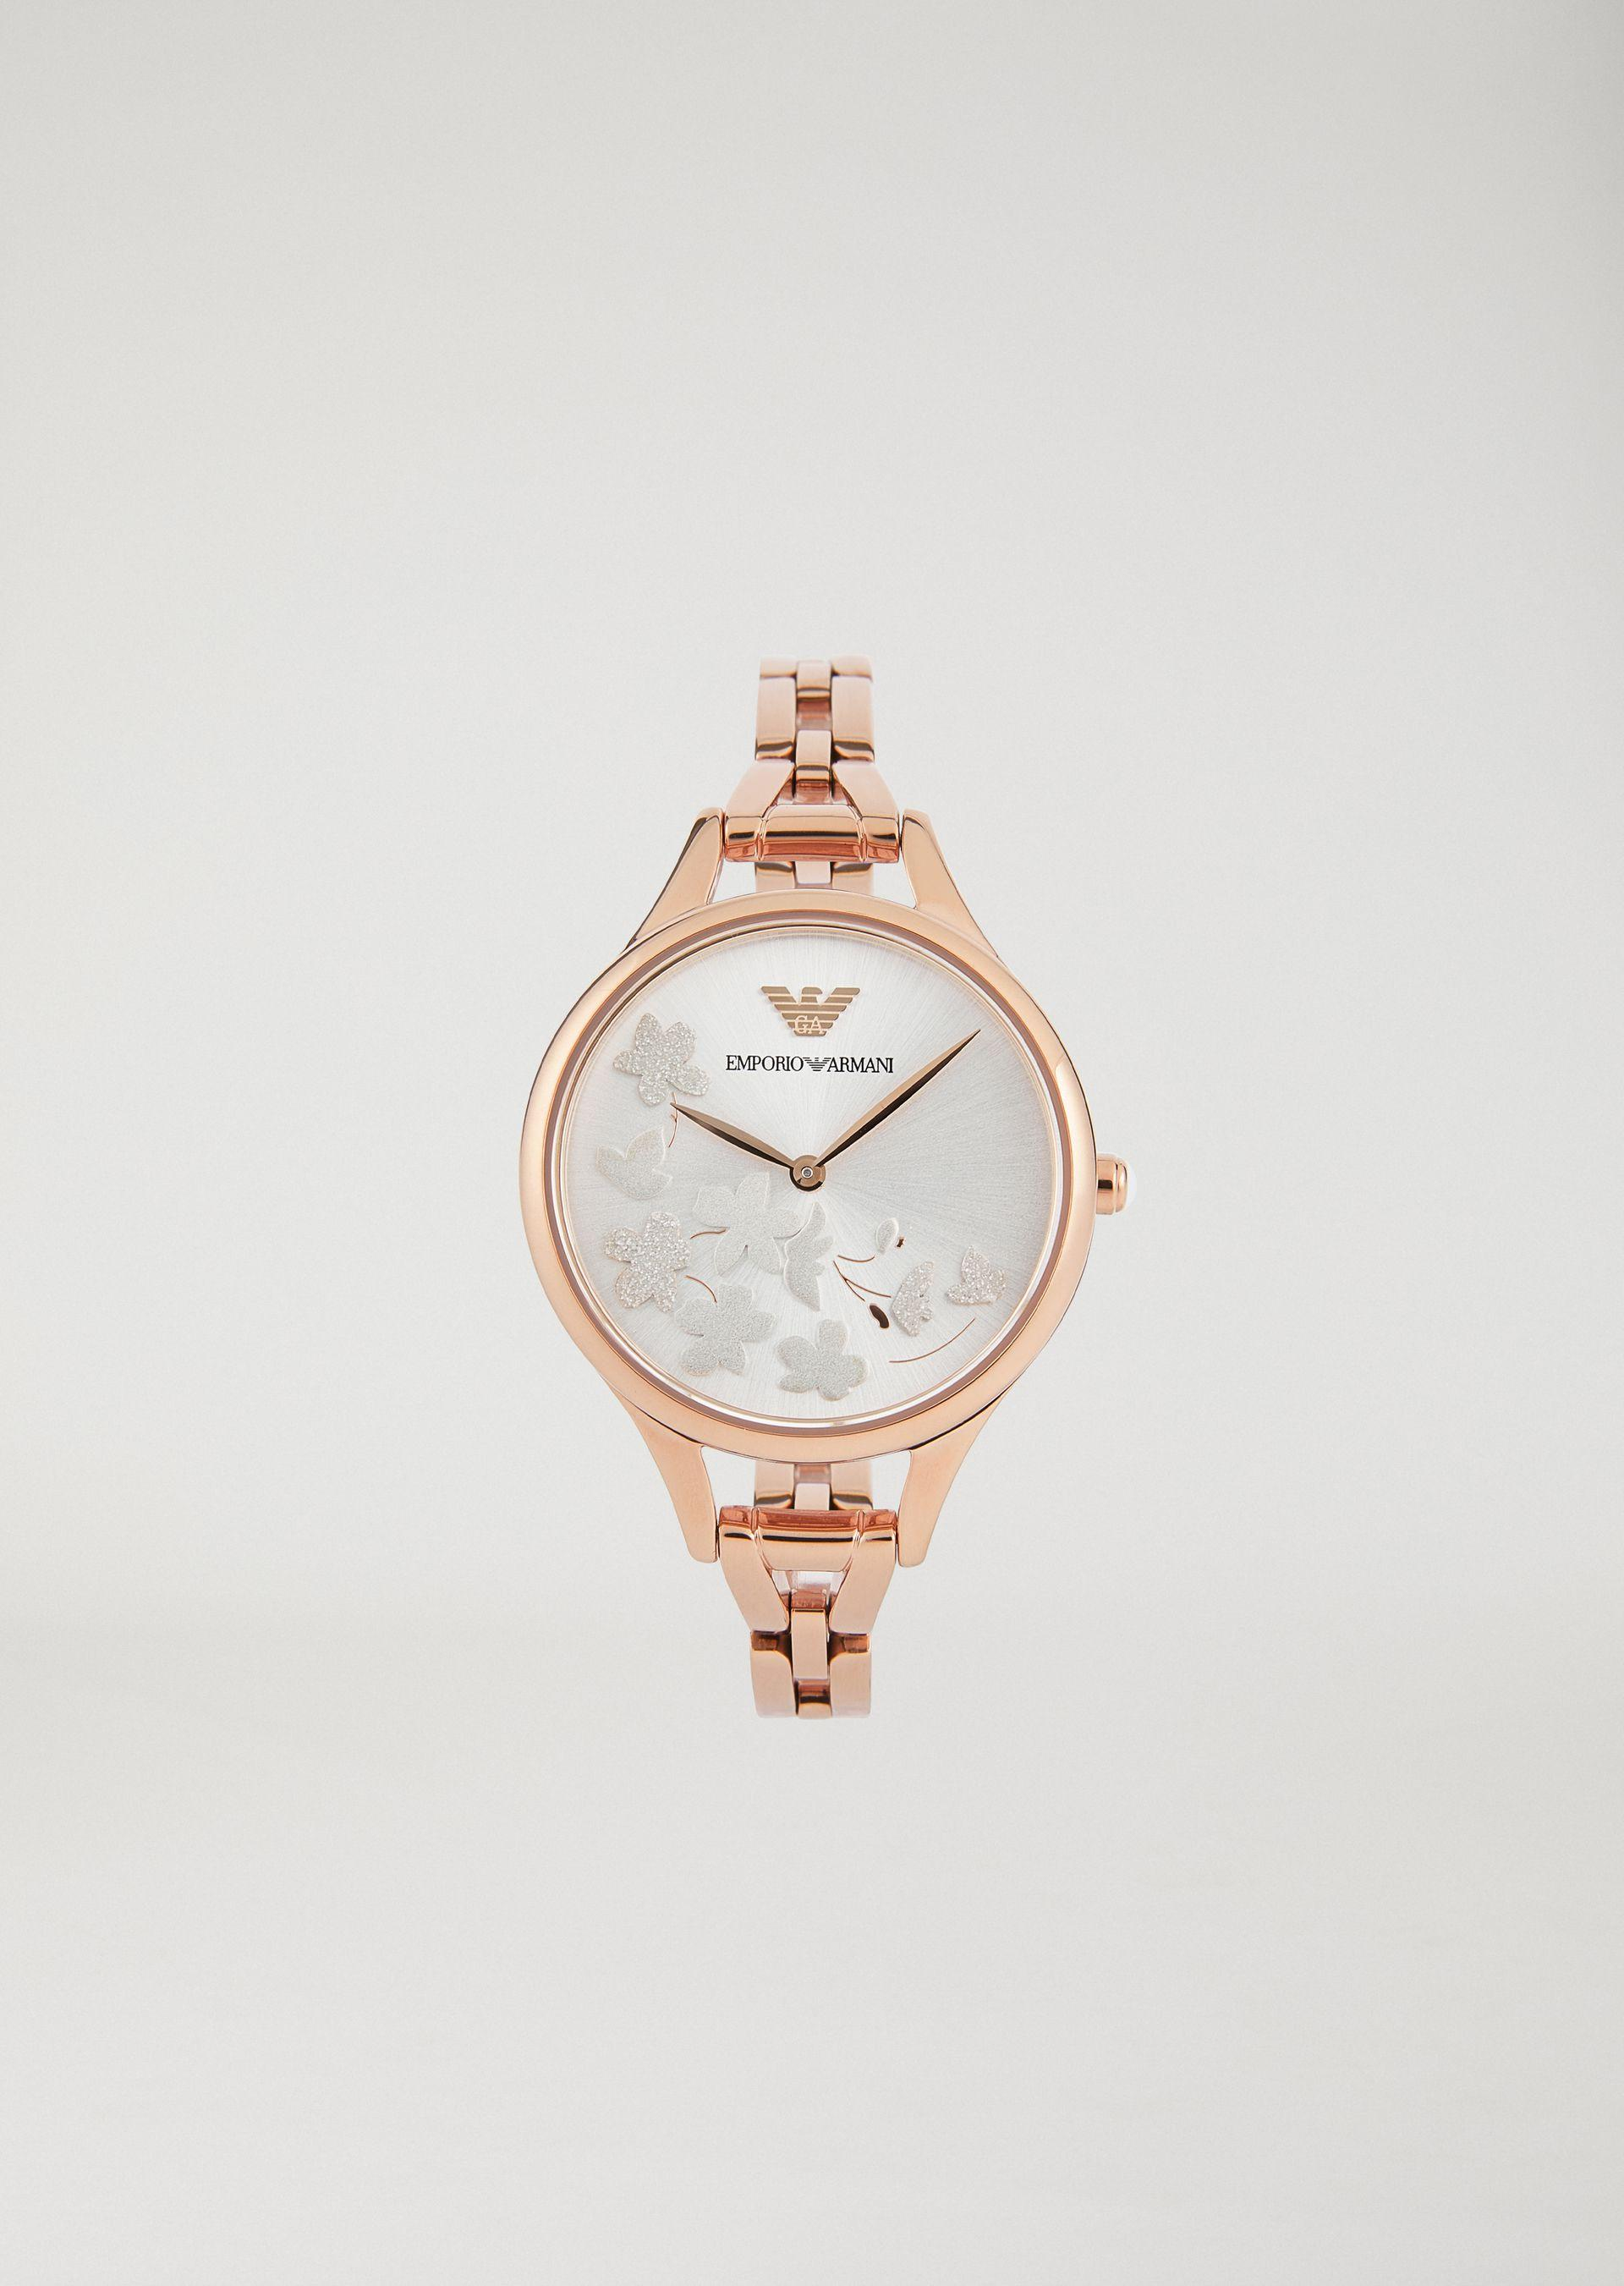 Emporio Armani Steel Strap Watches - Item 50207978 In Nude